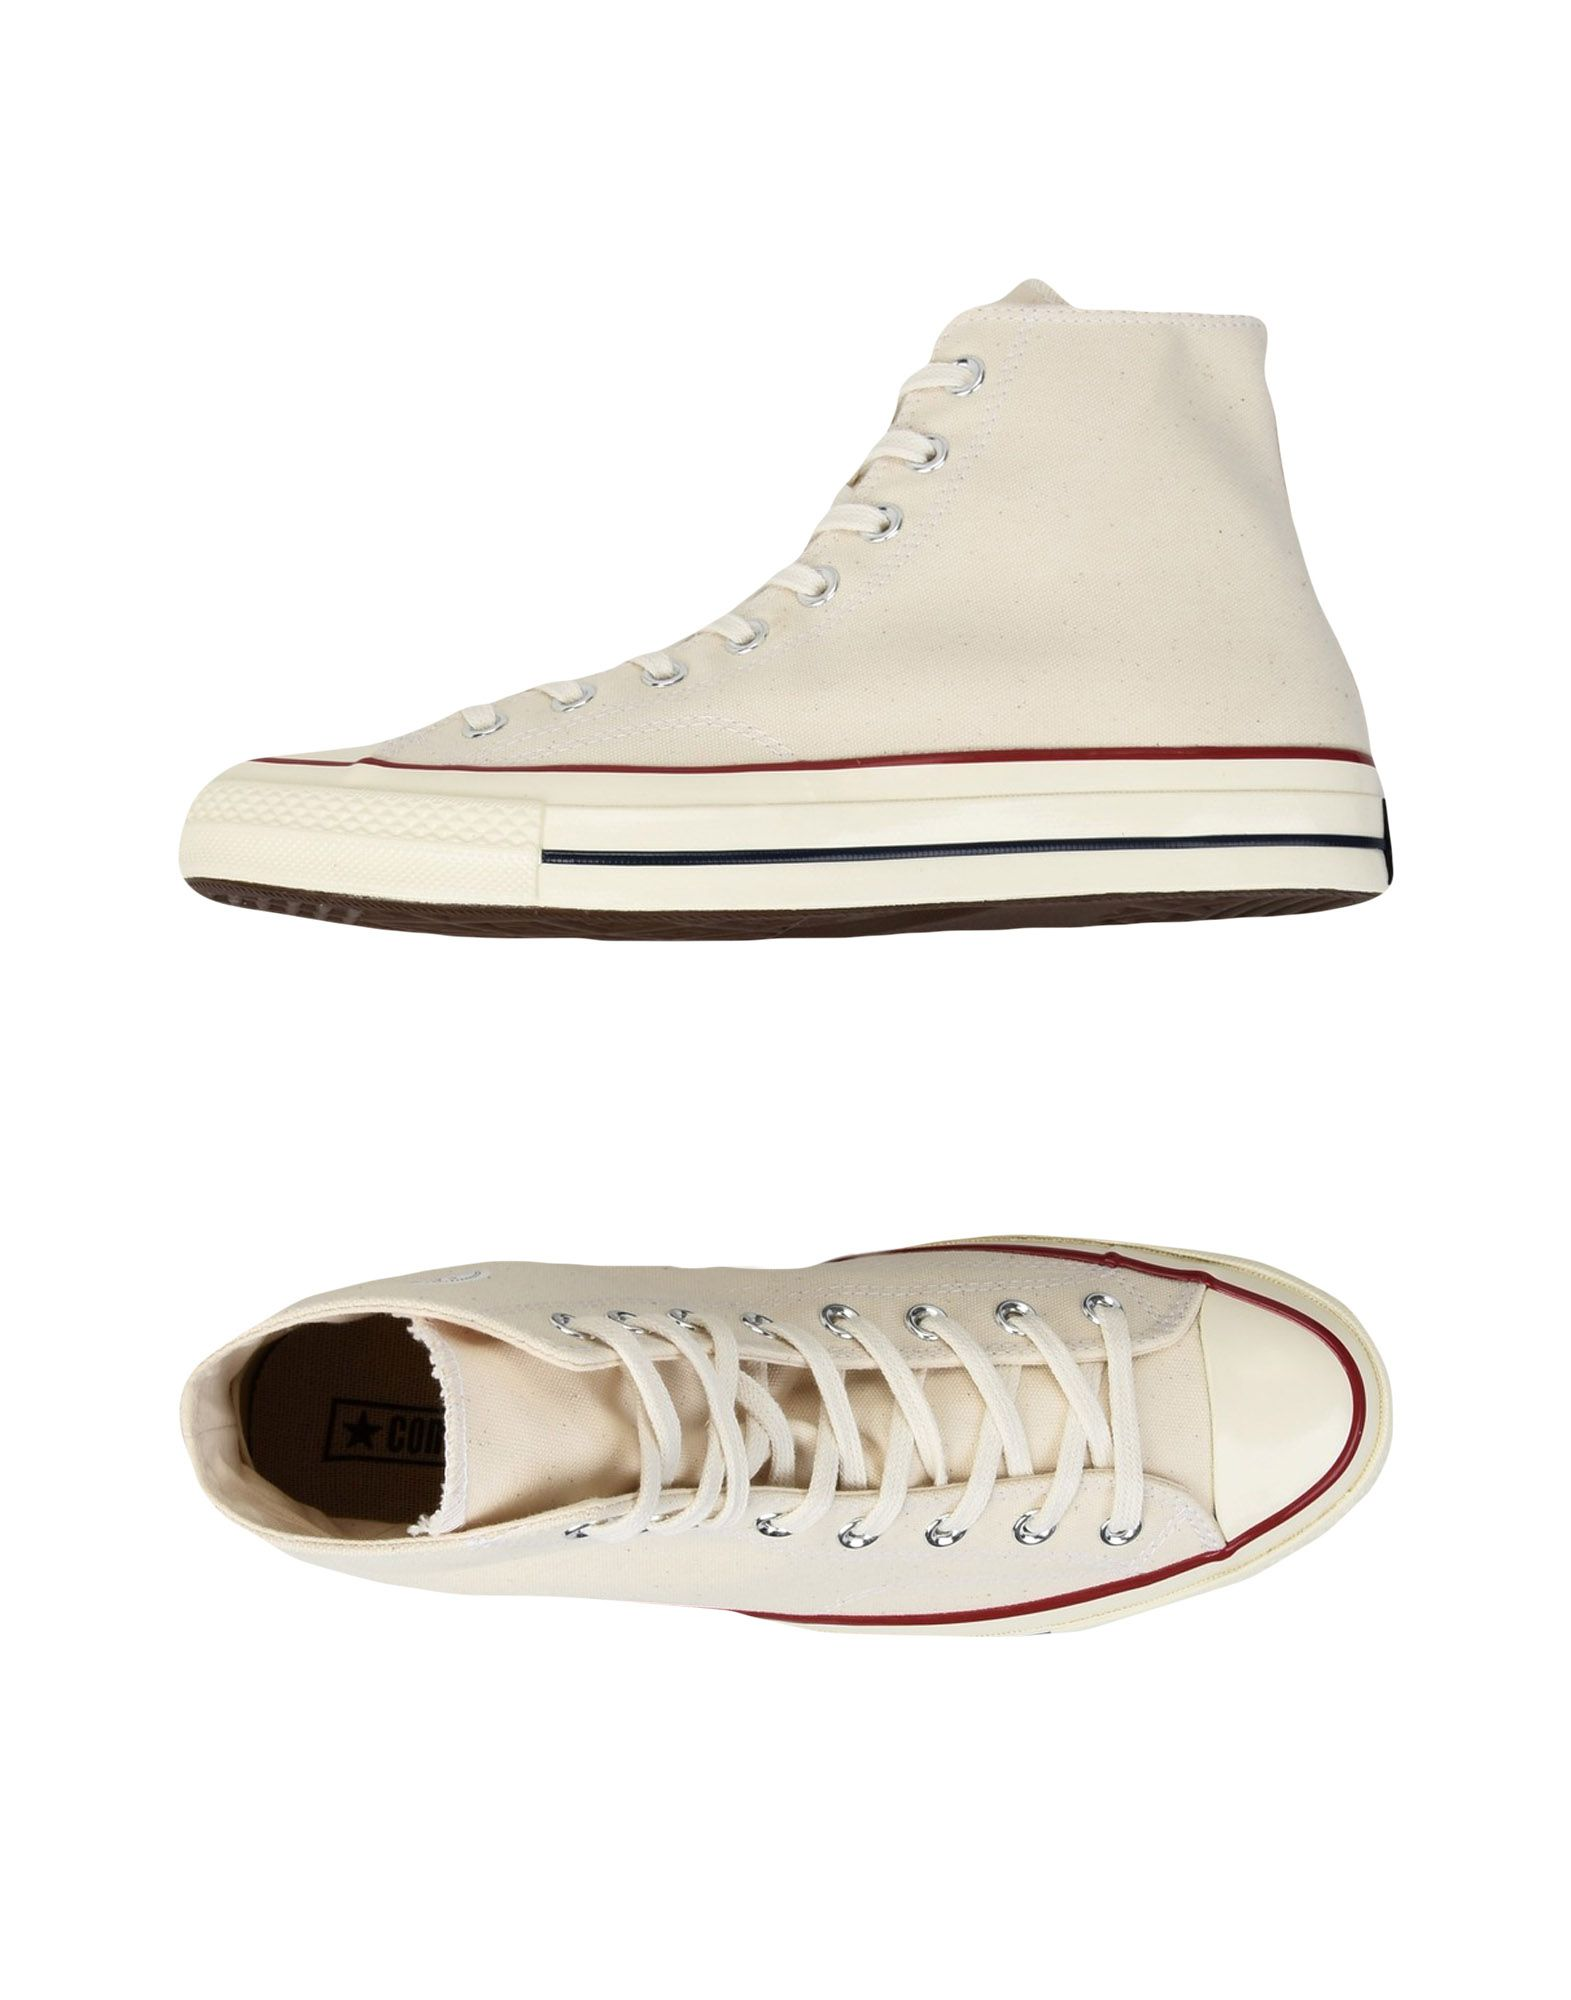 Scarpe Star da Ginnastica Converse All Star Scarpe Ct As Hi 70'S Canvas - Uomo - 11216589WD 78dc49